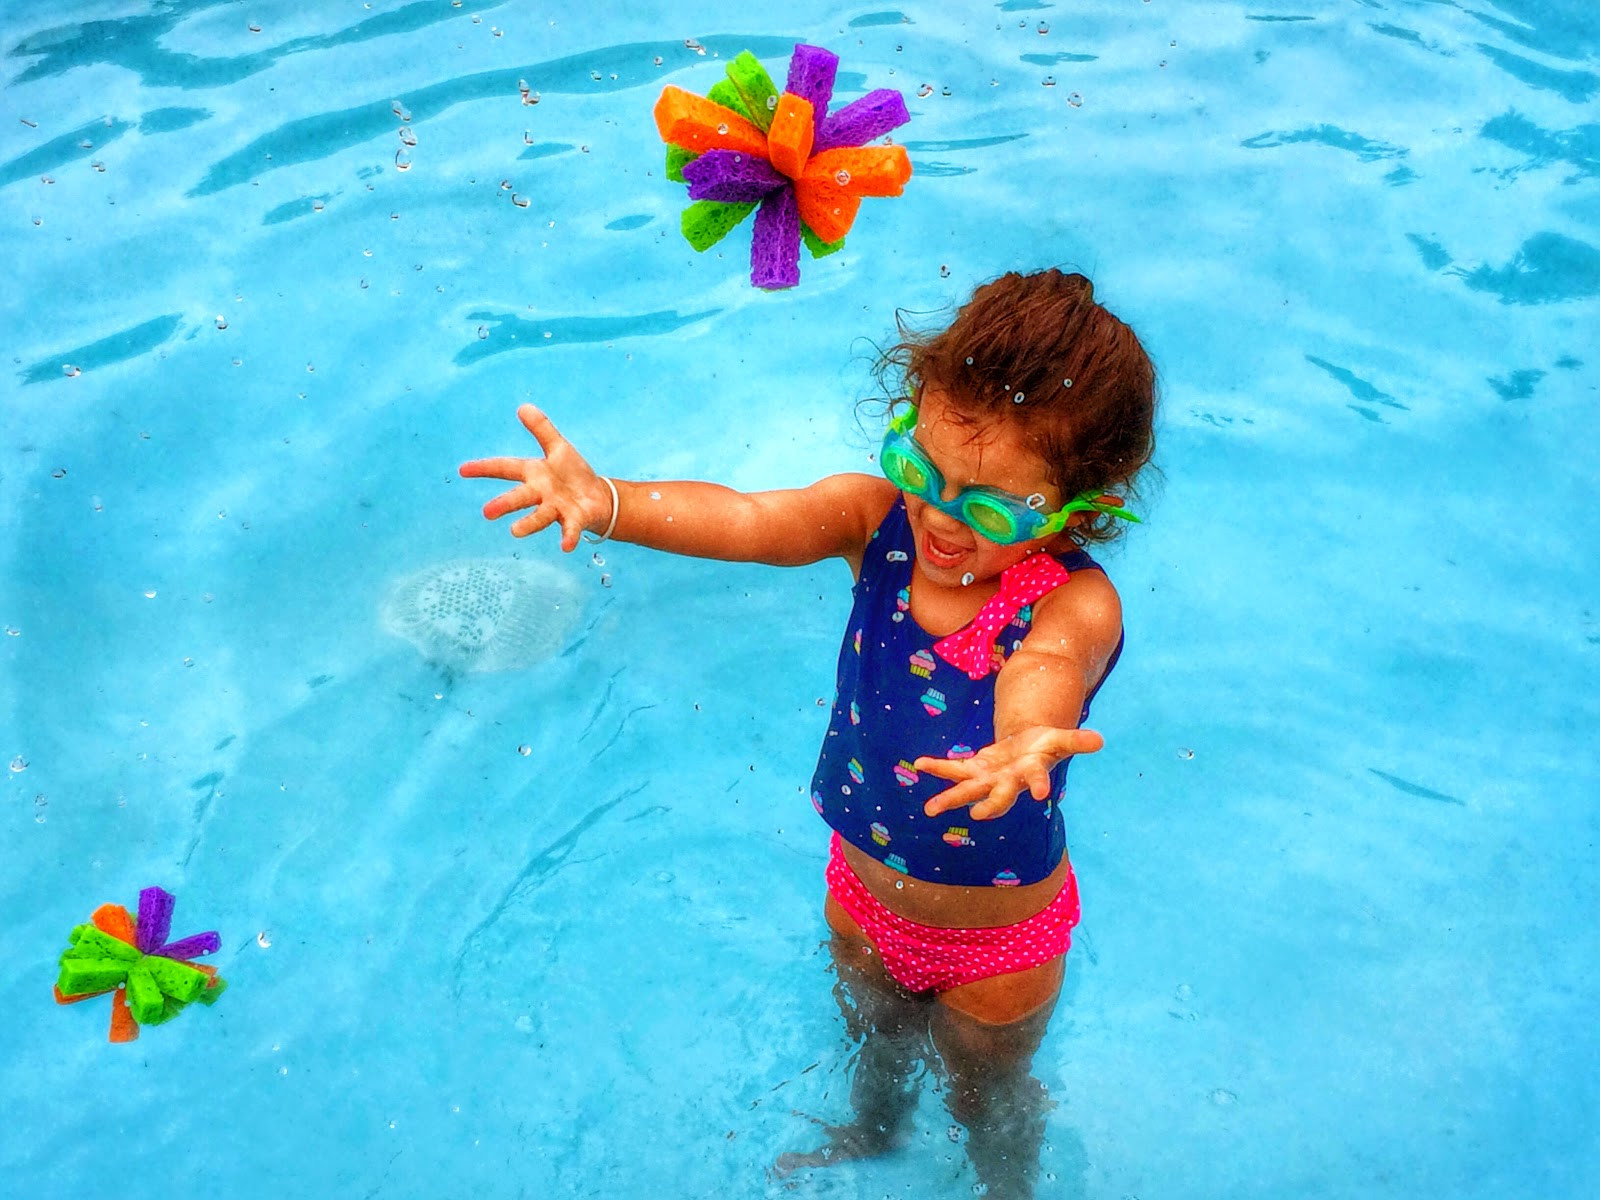 Best ideas about DIY Pool Toys . Save or Pin Our Beautifully Messy House DIY Pool Toys DIY Bath Toys Now.